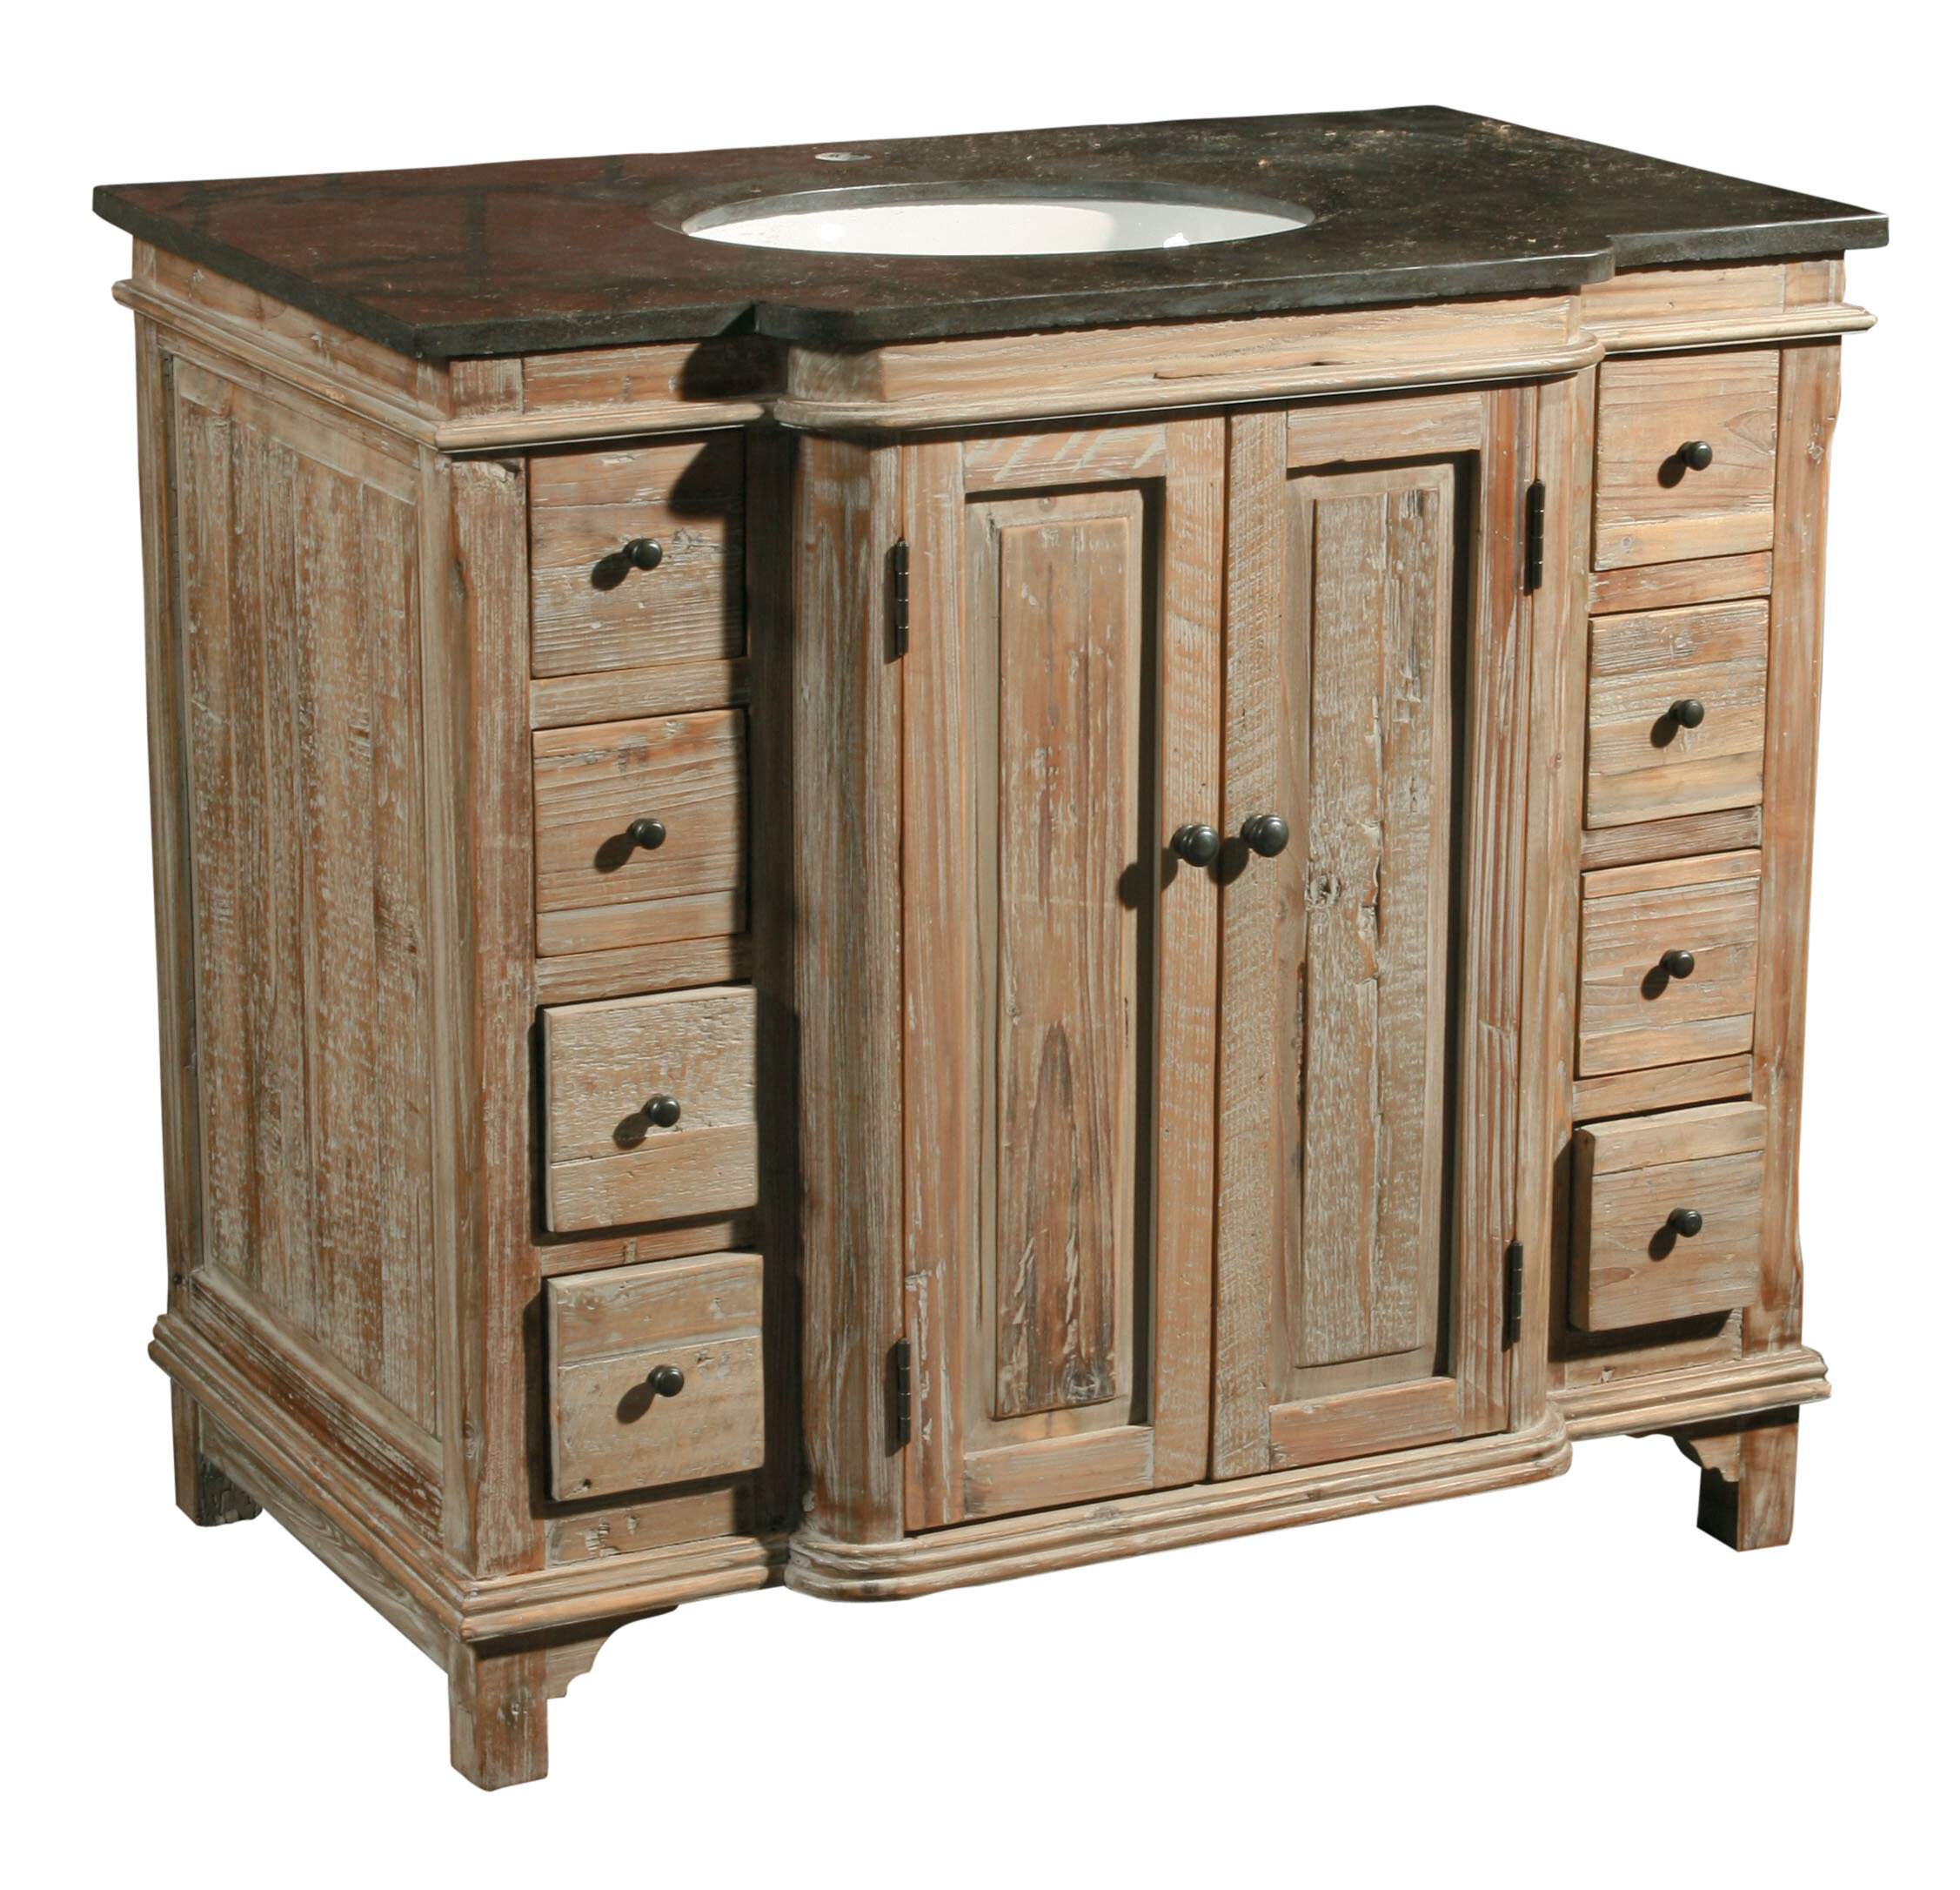 reclaimed furnituresteak table shabby for image of furniture garden full dresser chic teak furnitures